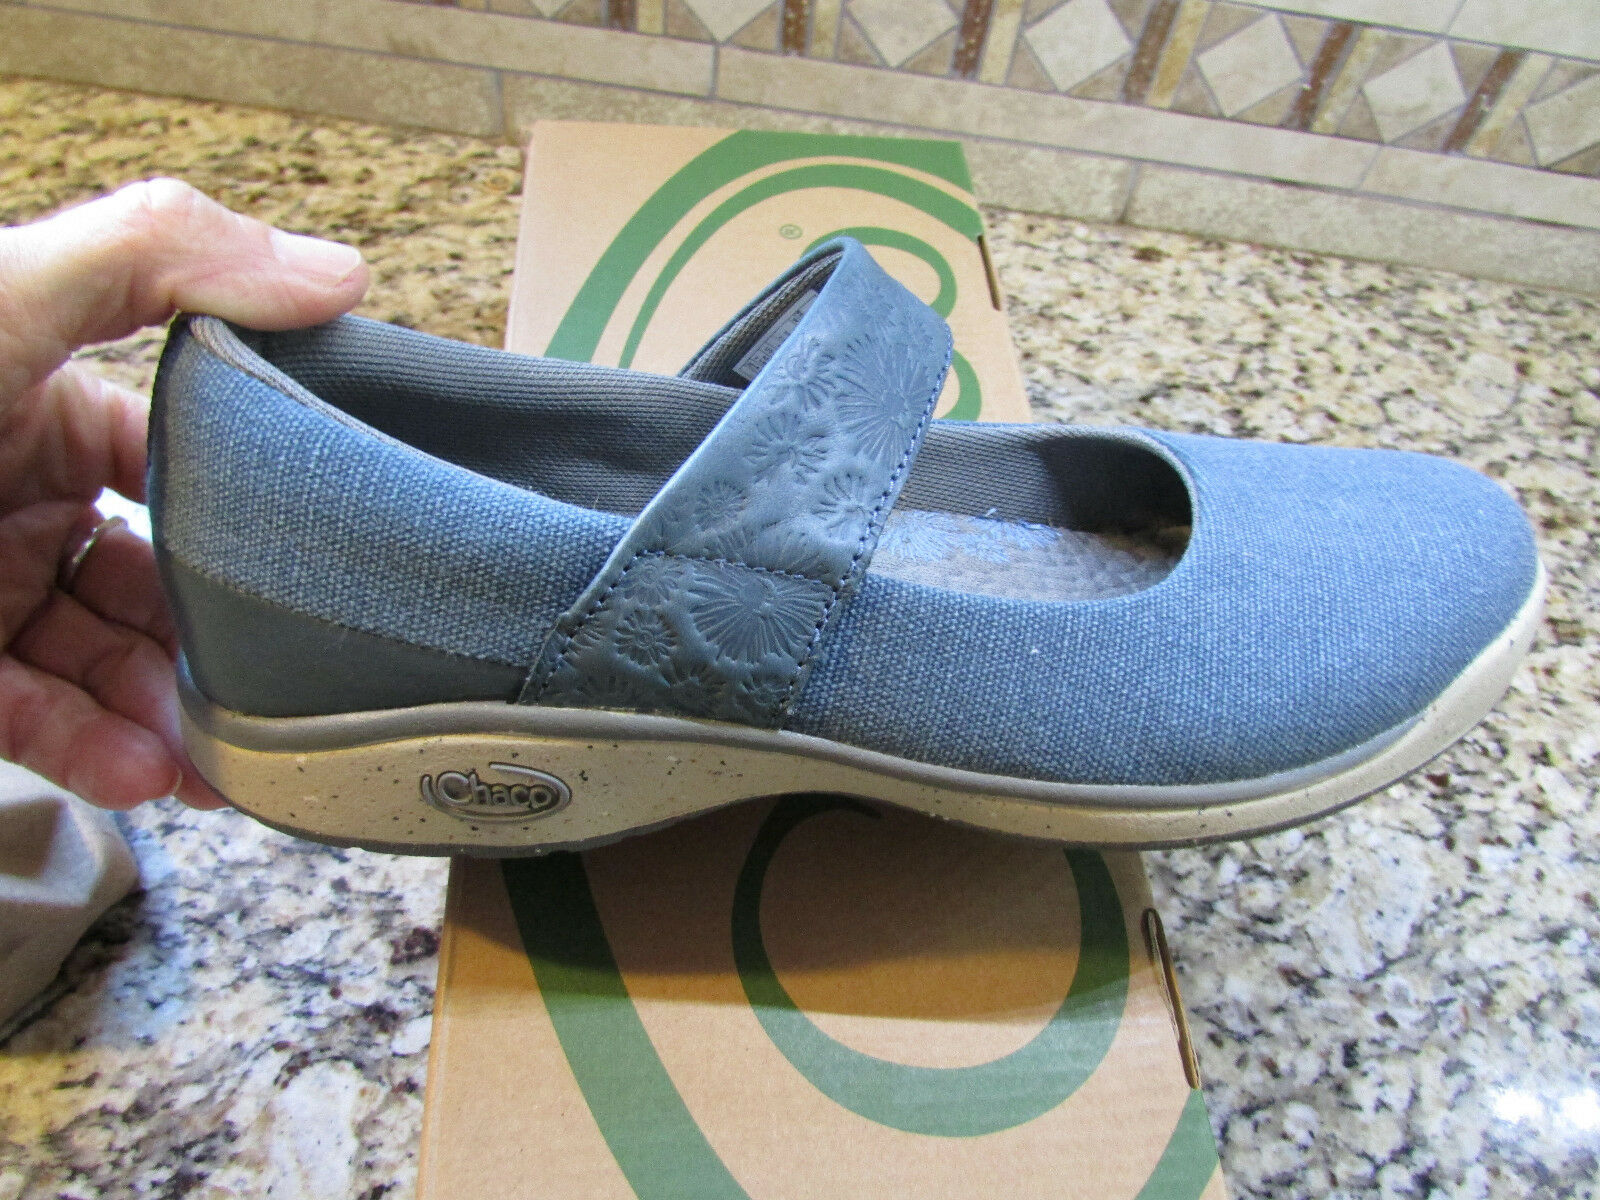 NEWS CHACO GALA MARY JANES SHOES WOMENS 9 BLUE STYLE STYLE BLUE J104608  FREE SHIP 910a29